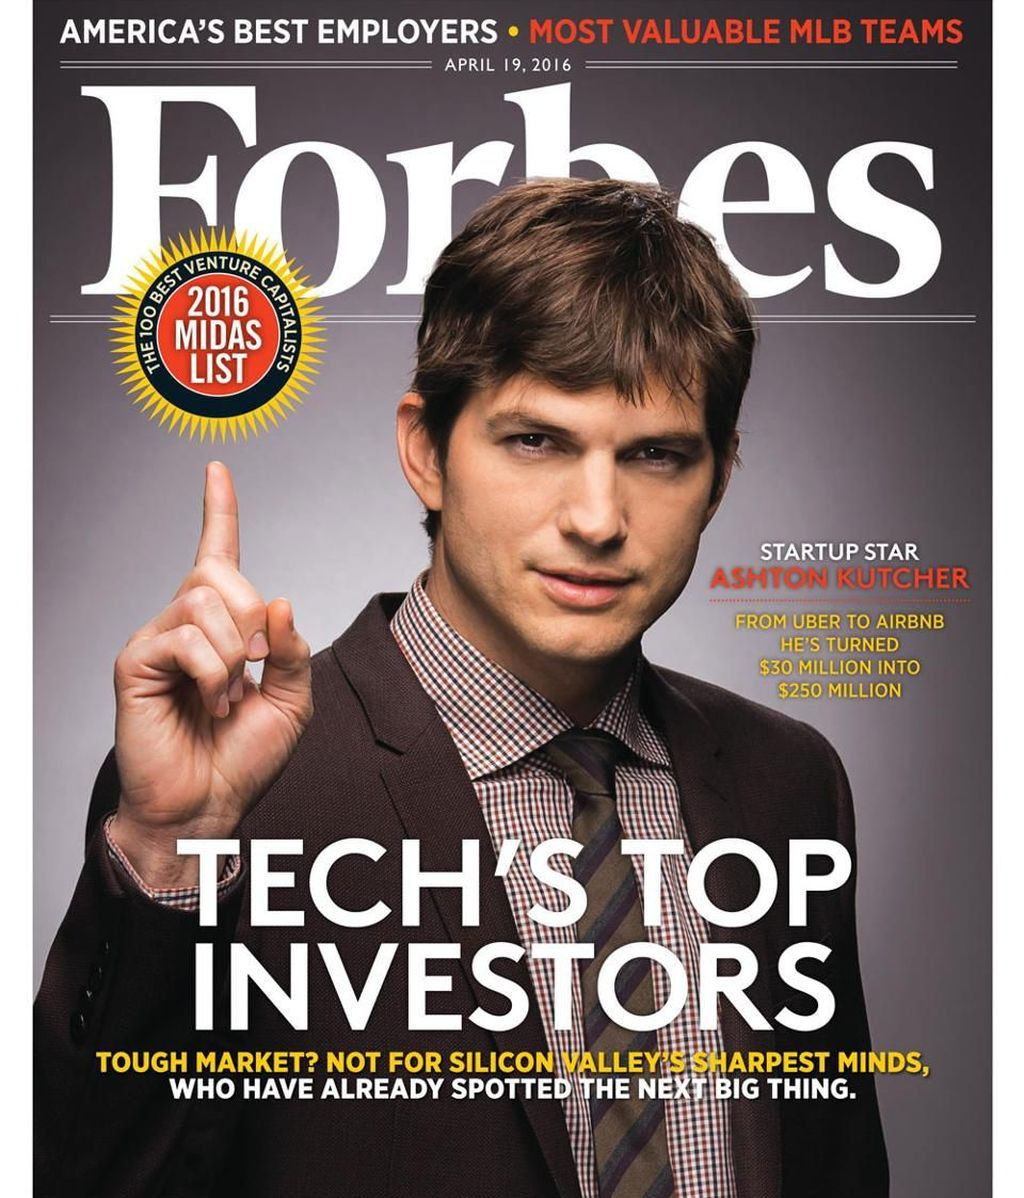 https _blogs-images.forbes.com_zackomalleygreenburg_files_2016_03_0321_forbes-cover-midas-kutcher-domestic-04-19-2016_1000x13002.jpg?width=960